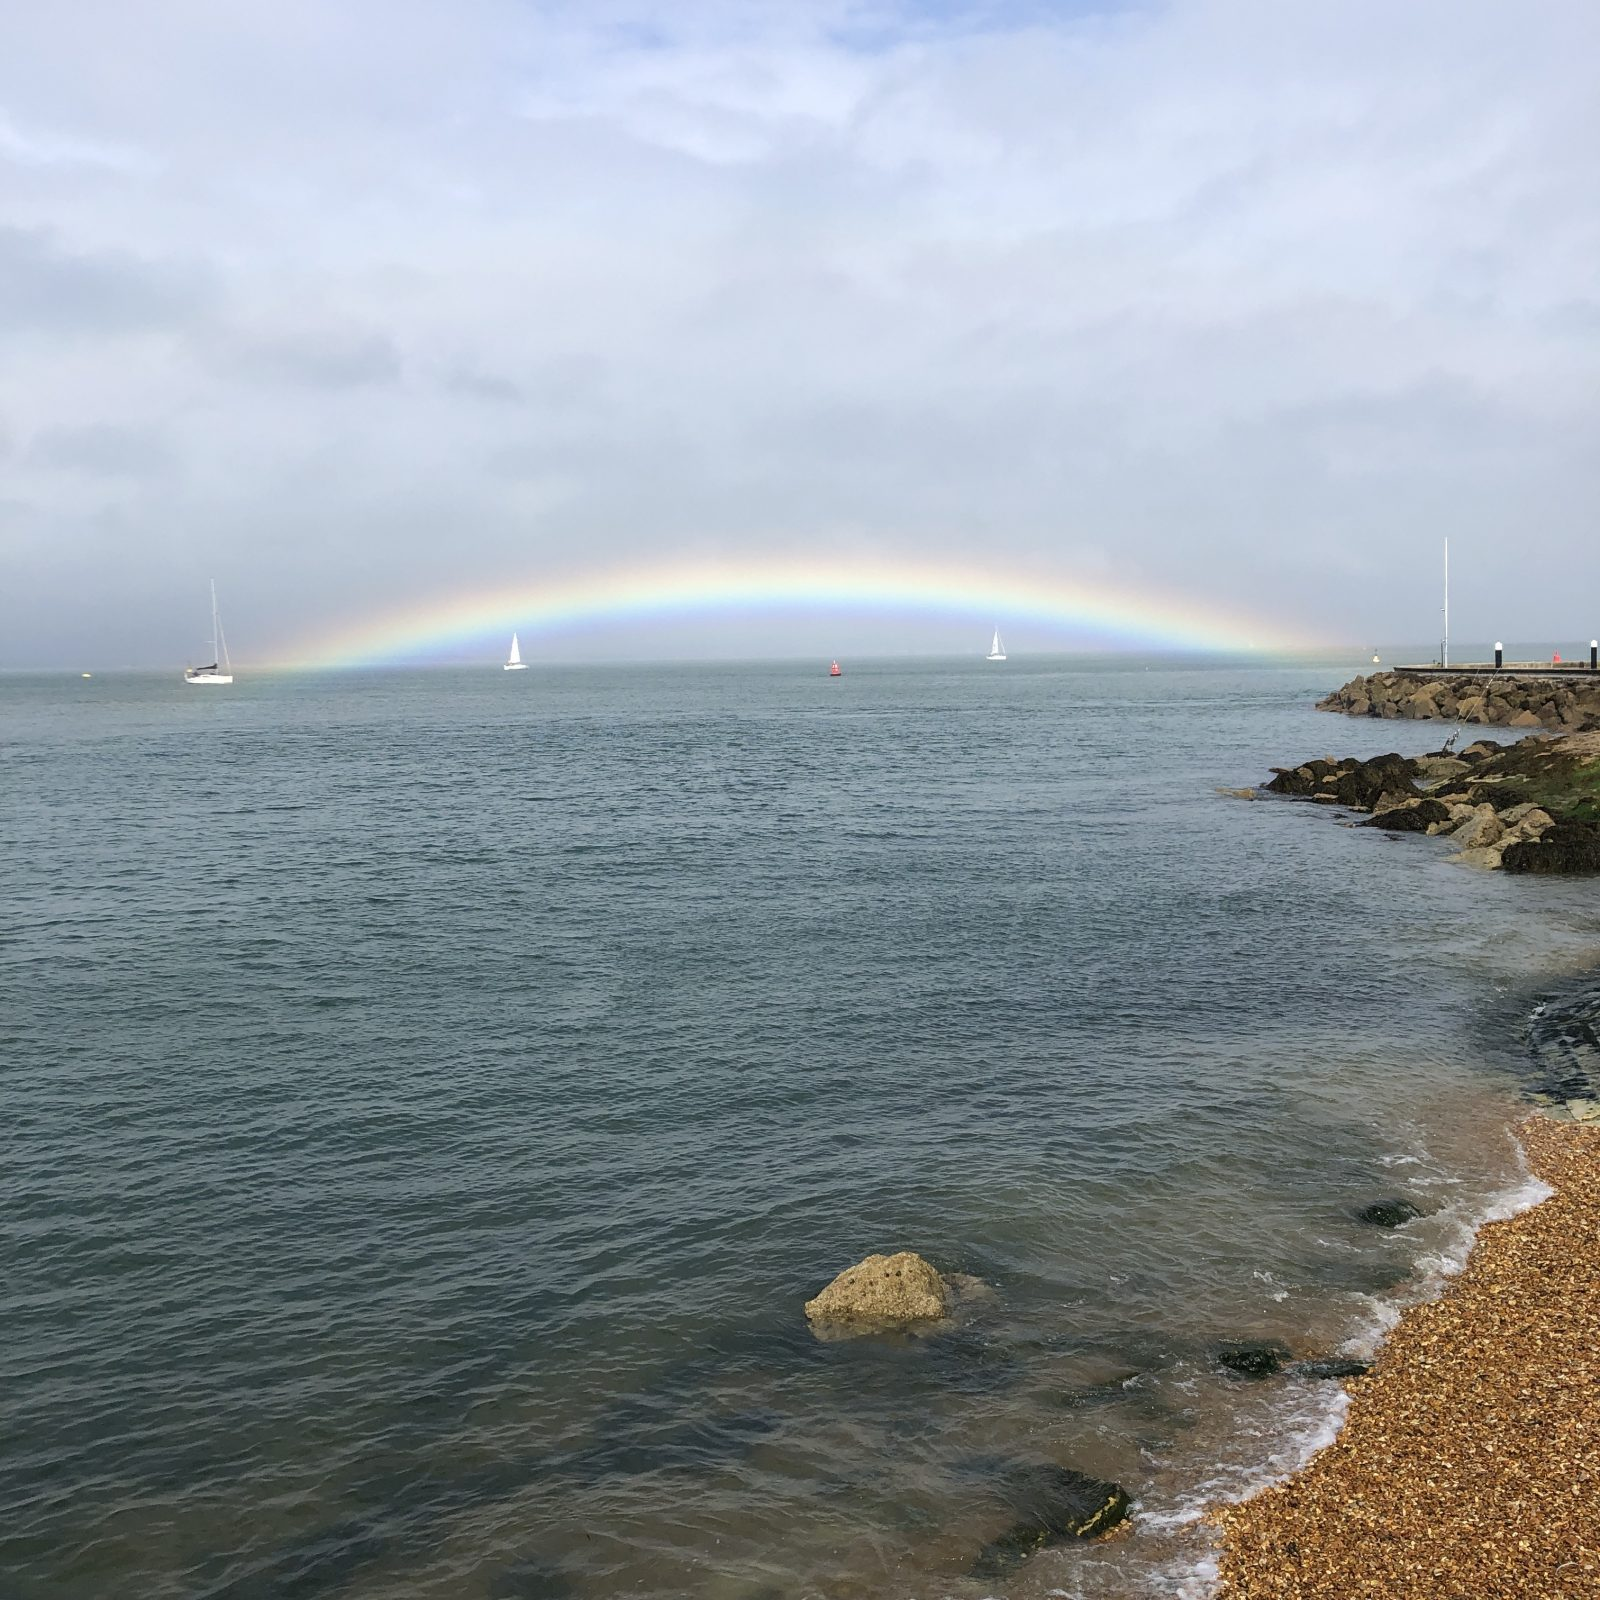 Rainbow over the Solent